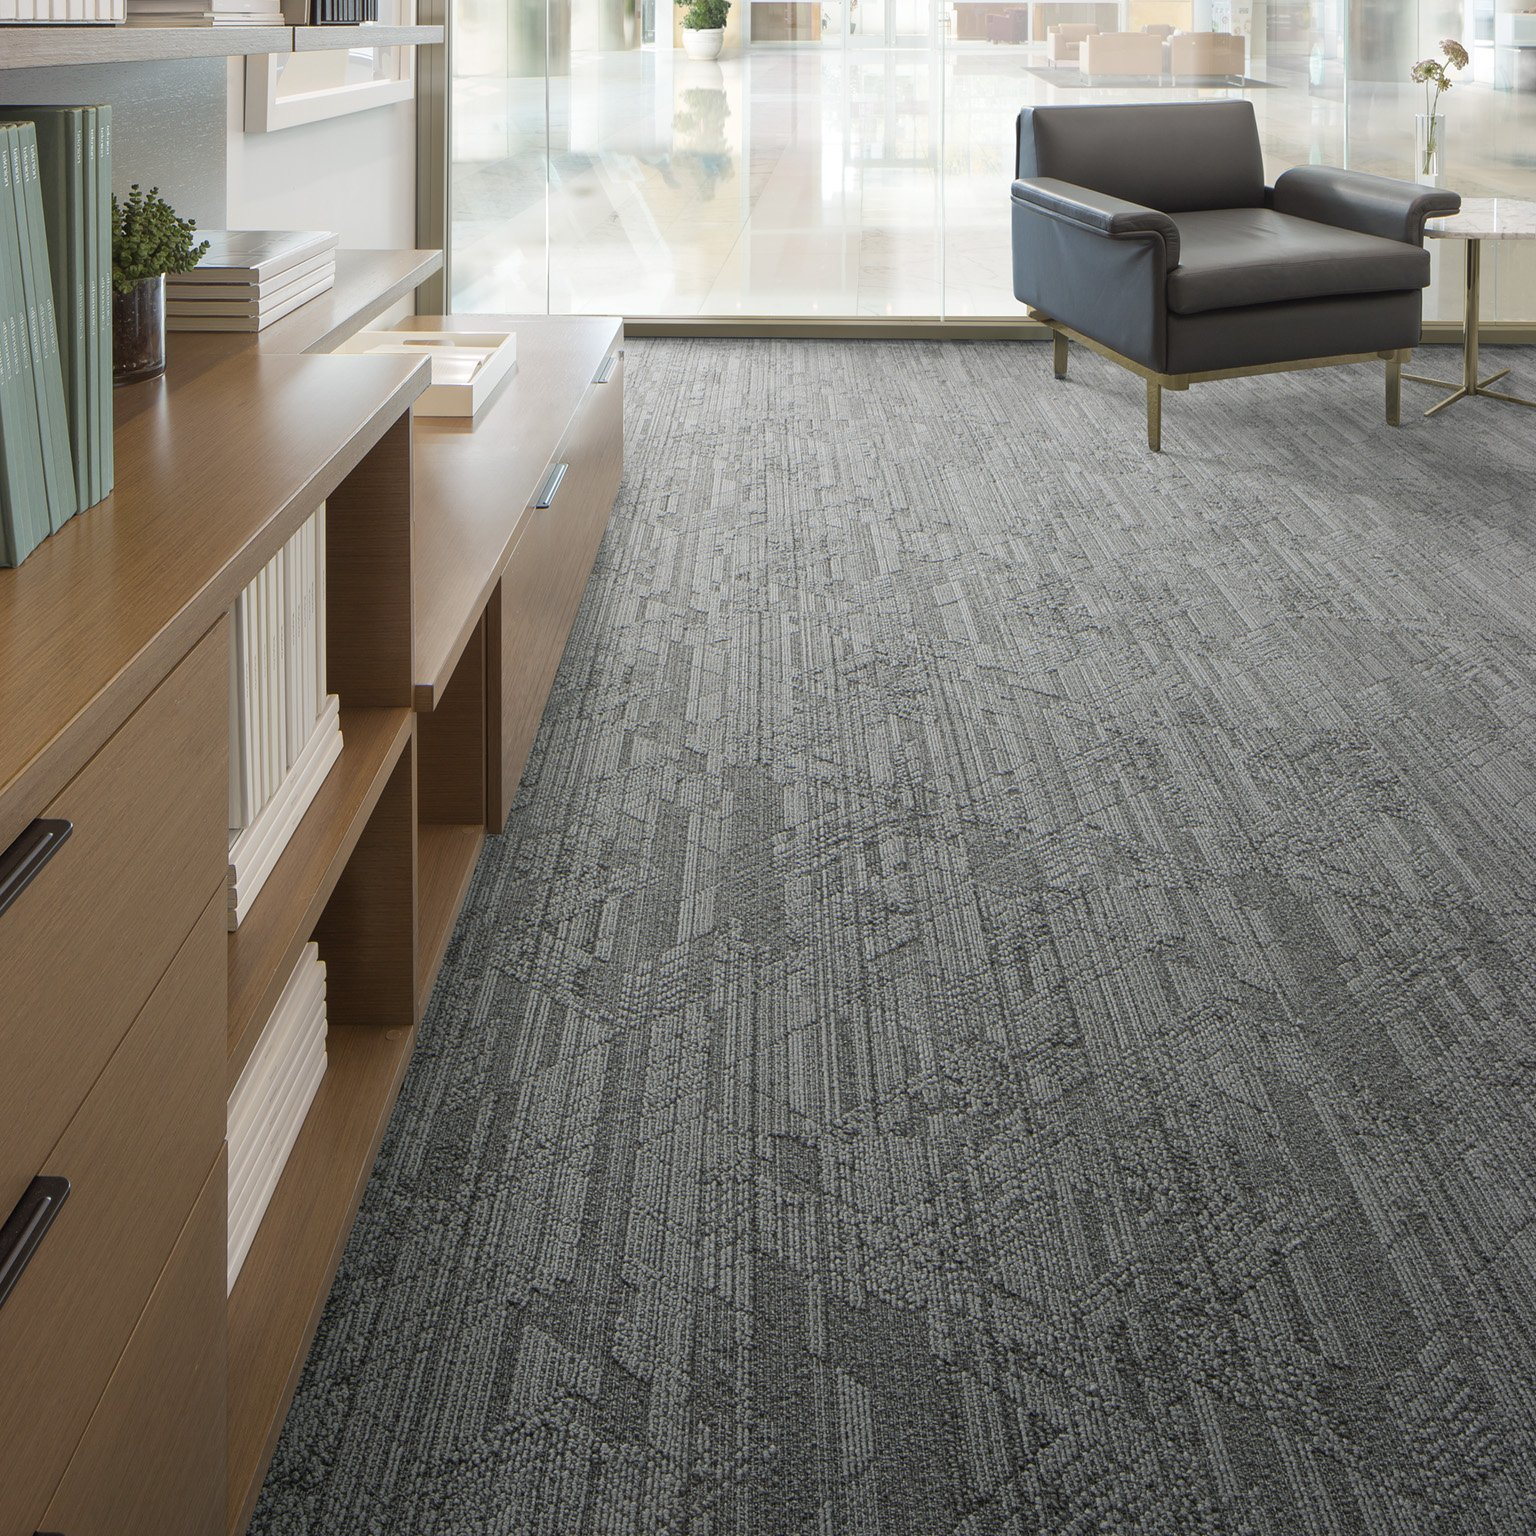 Wool Carpet Seattle Images Wool Carpet Seattle Images  : SUMMITRBL1536x1536 20170124210616 from favefaves.com size 768 x 768 jpeg 153kB